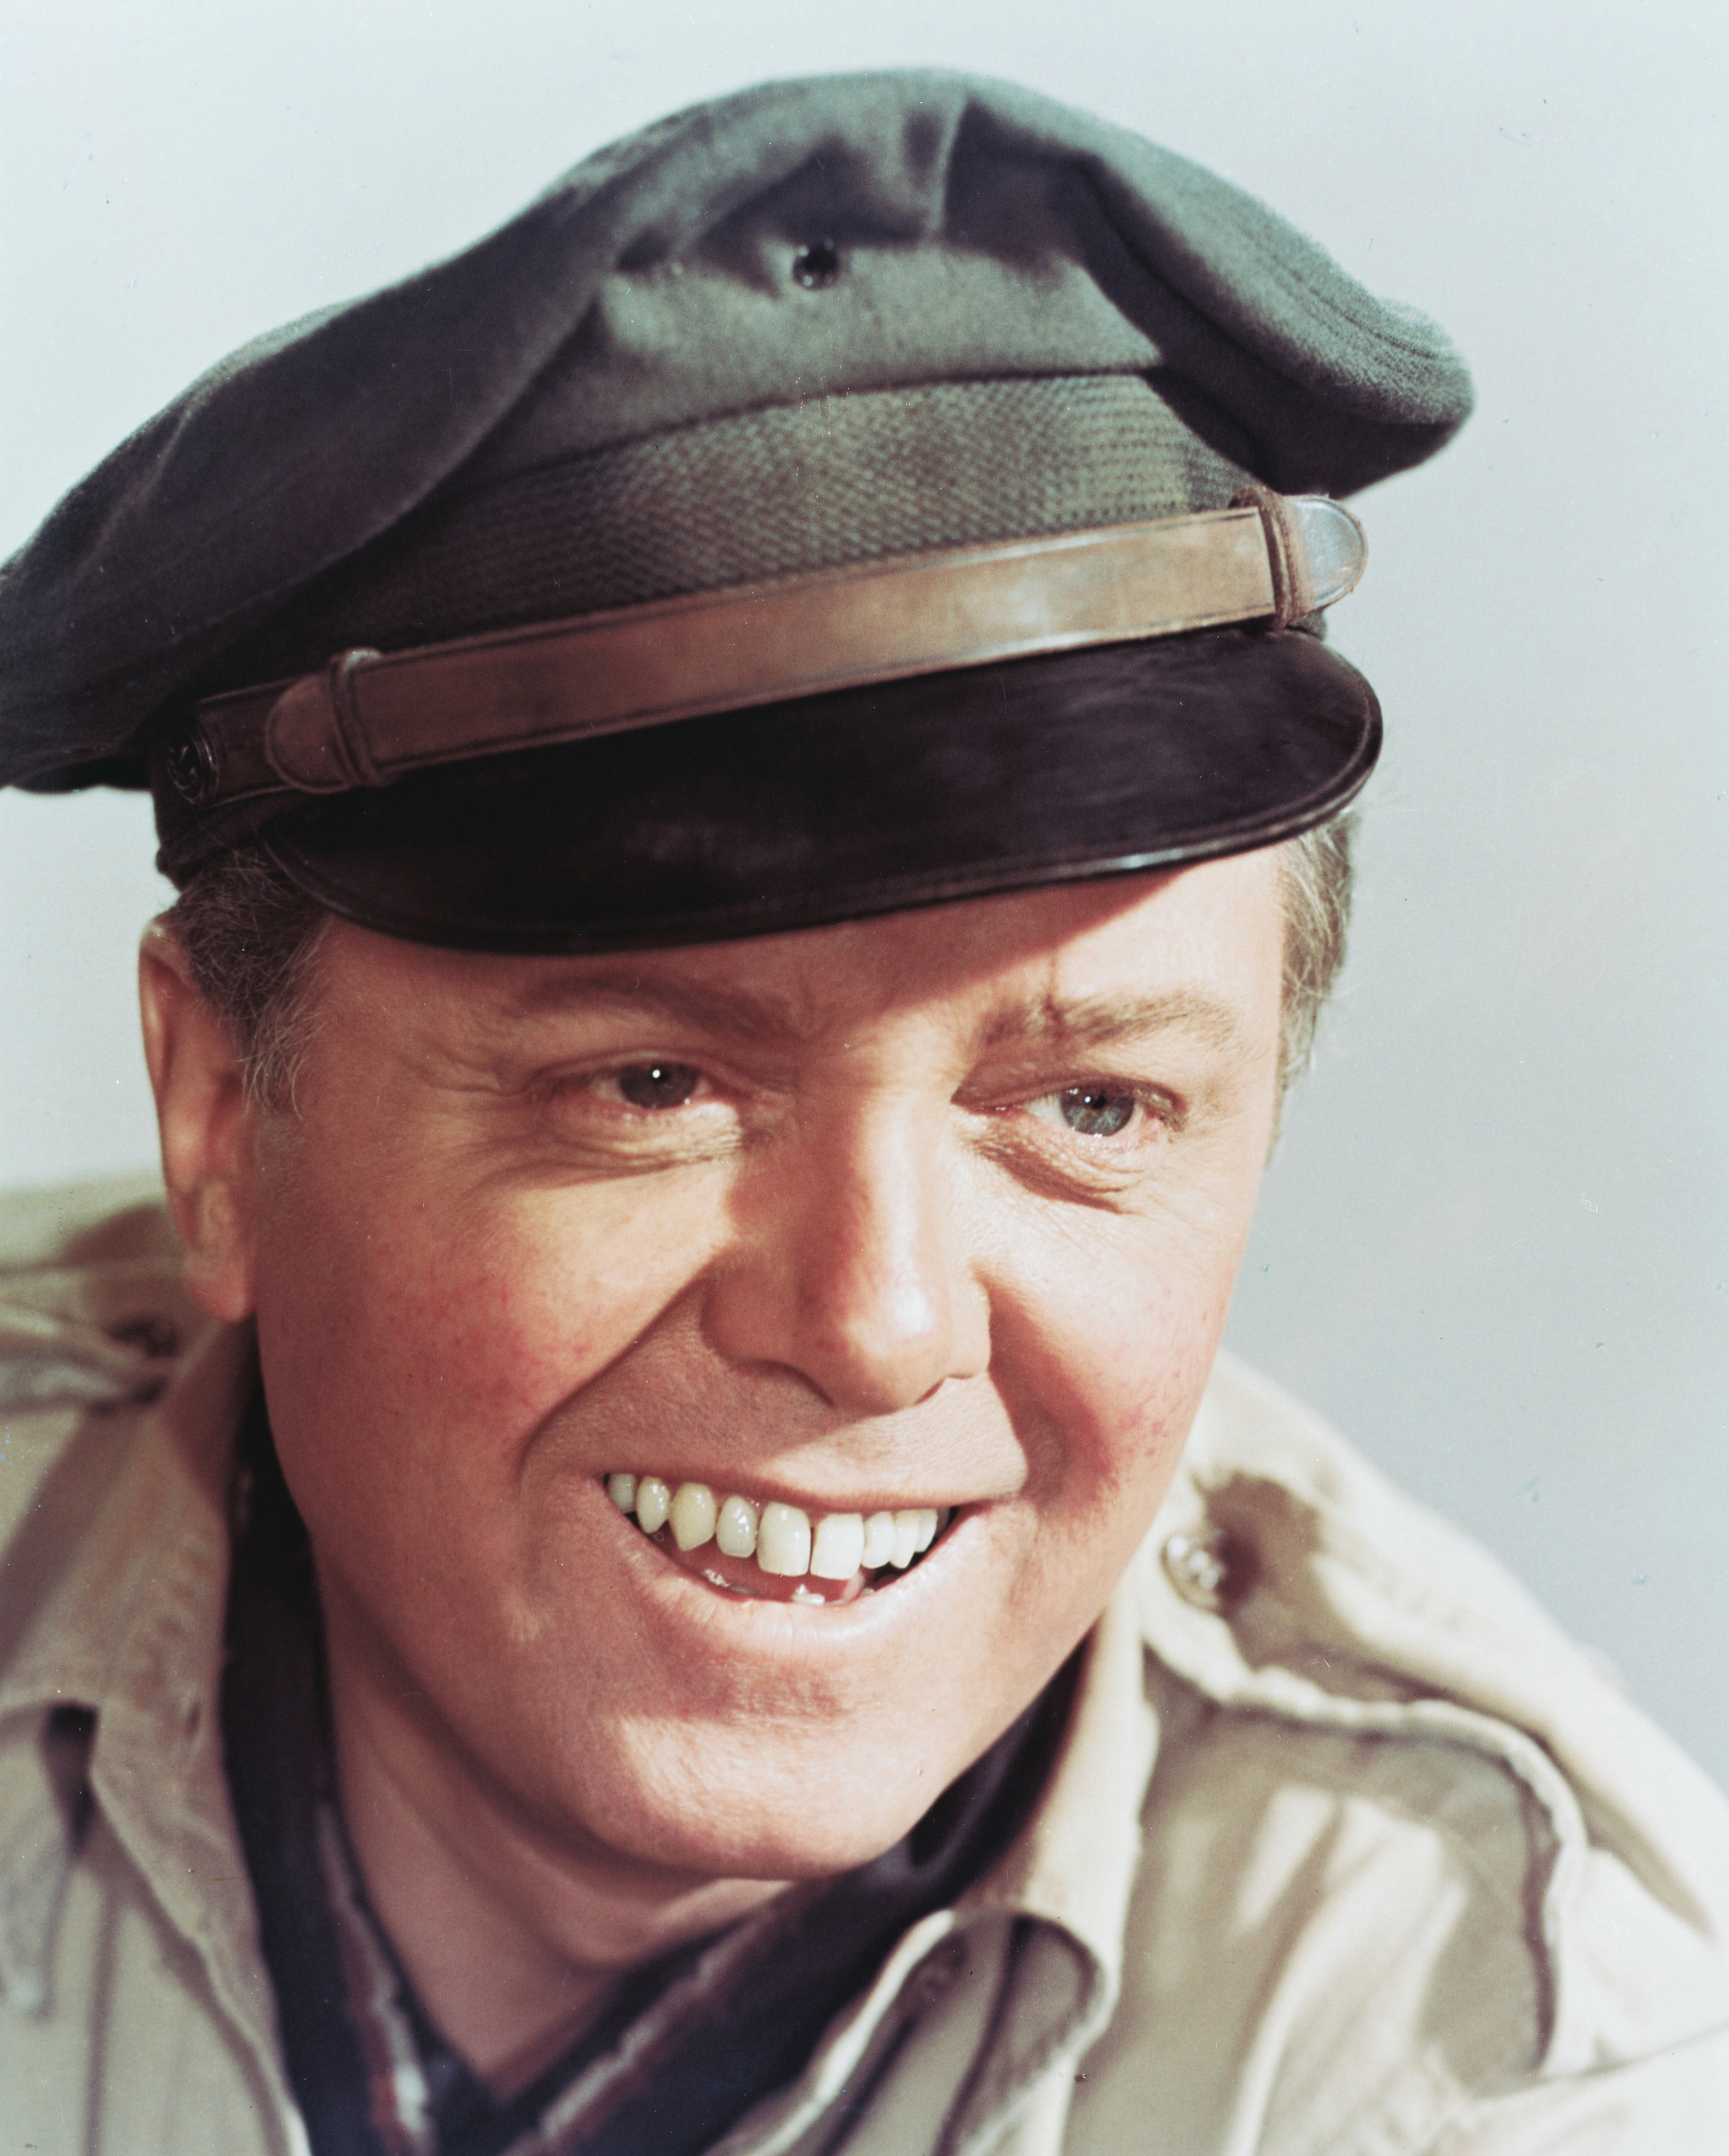 Richard Attenborough in a publicity portrait for the film The Flight of the Phoenix in 1965.